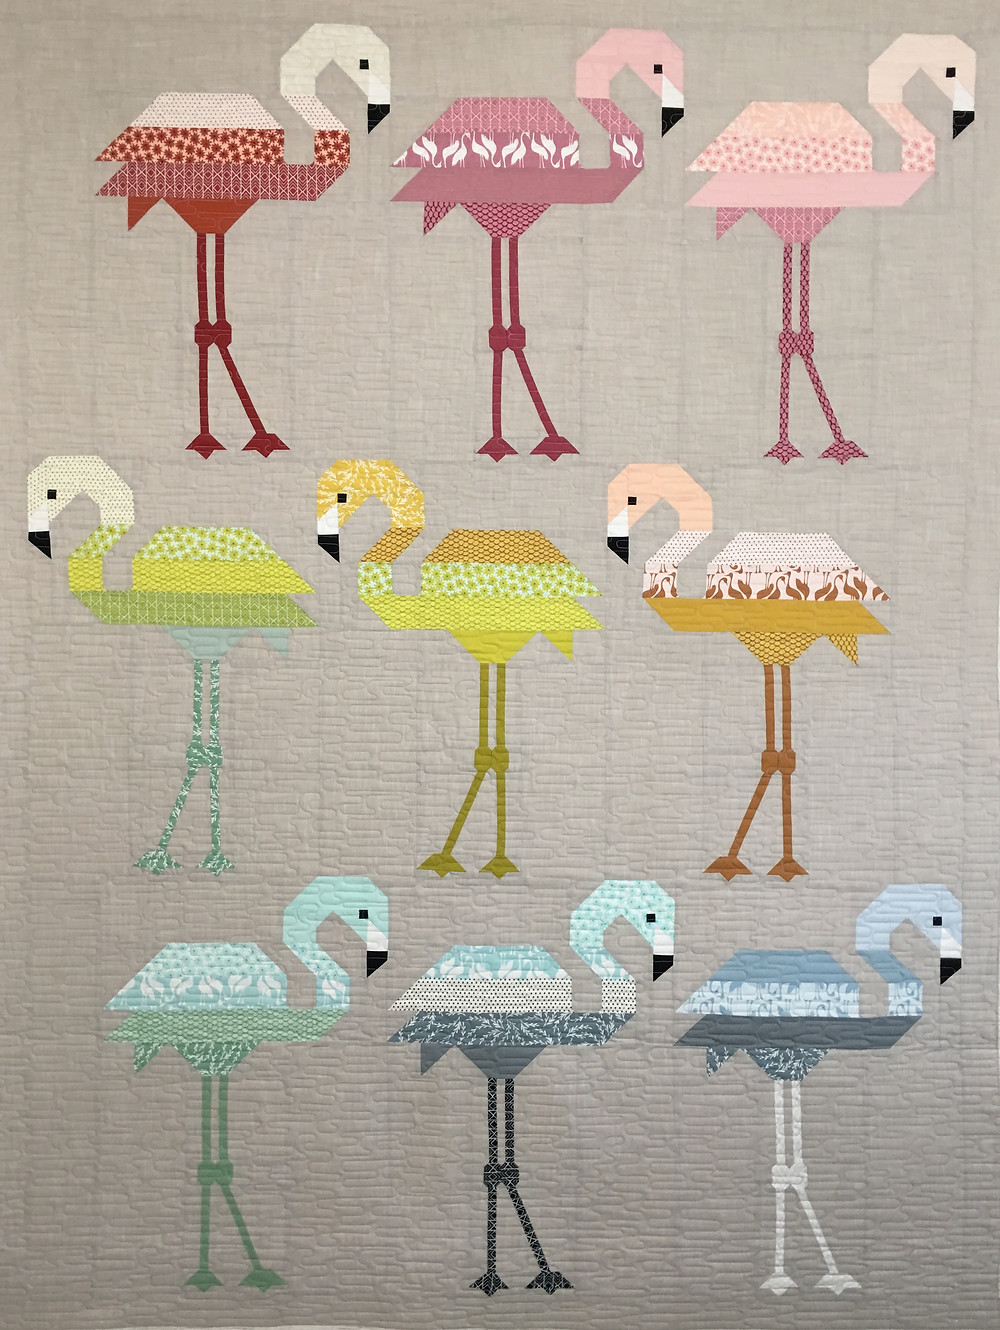 Flamingo Quilt by Delfina Guerra